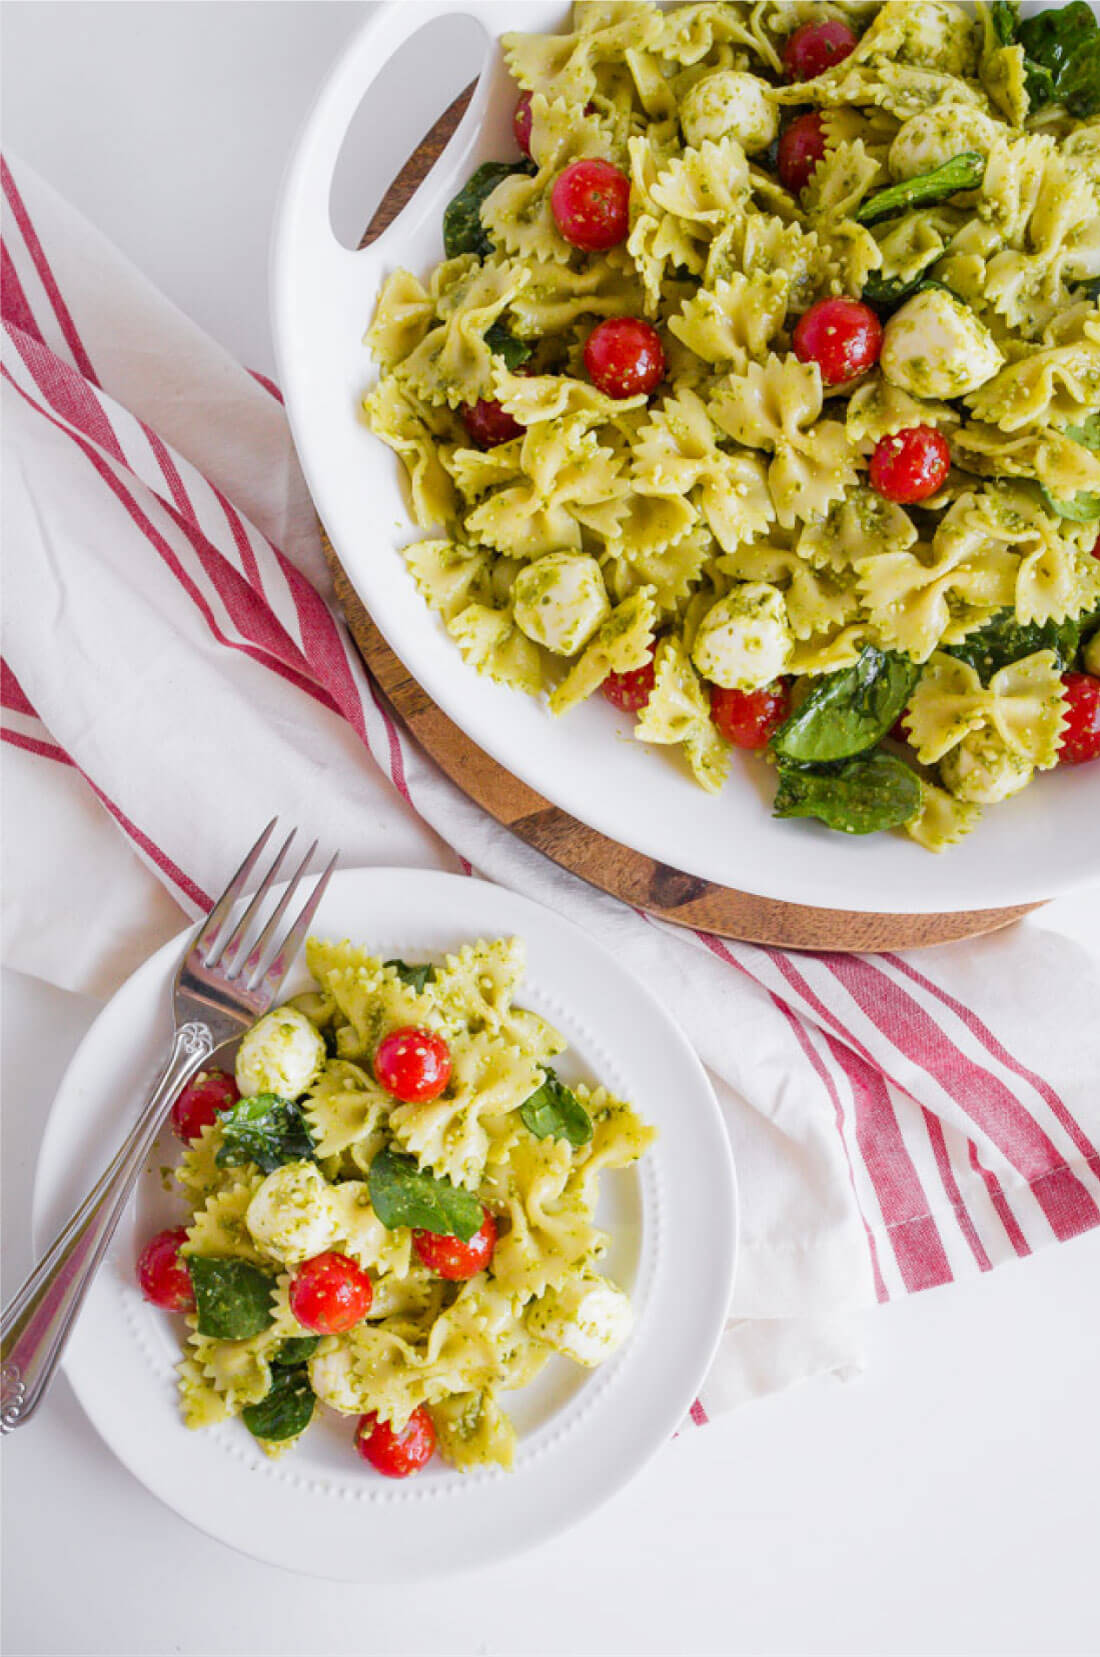 Pesto Pasta Salad Recipe - a take on an old classic. This pasta recipe is so good! www.thirtyhandmadedays.com